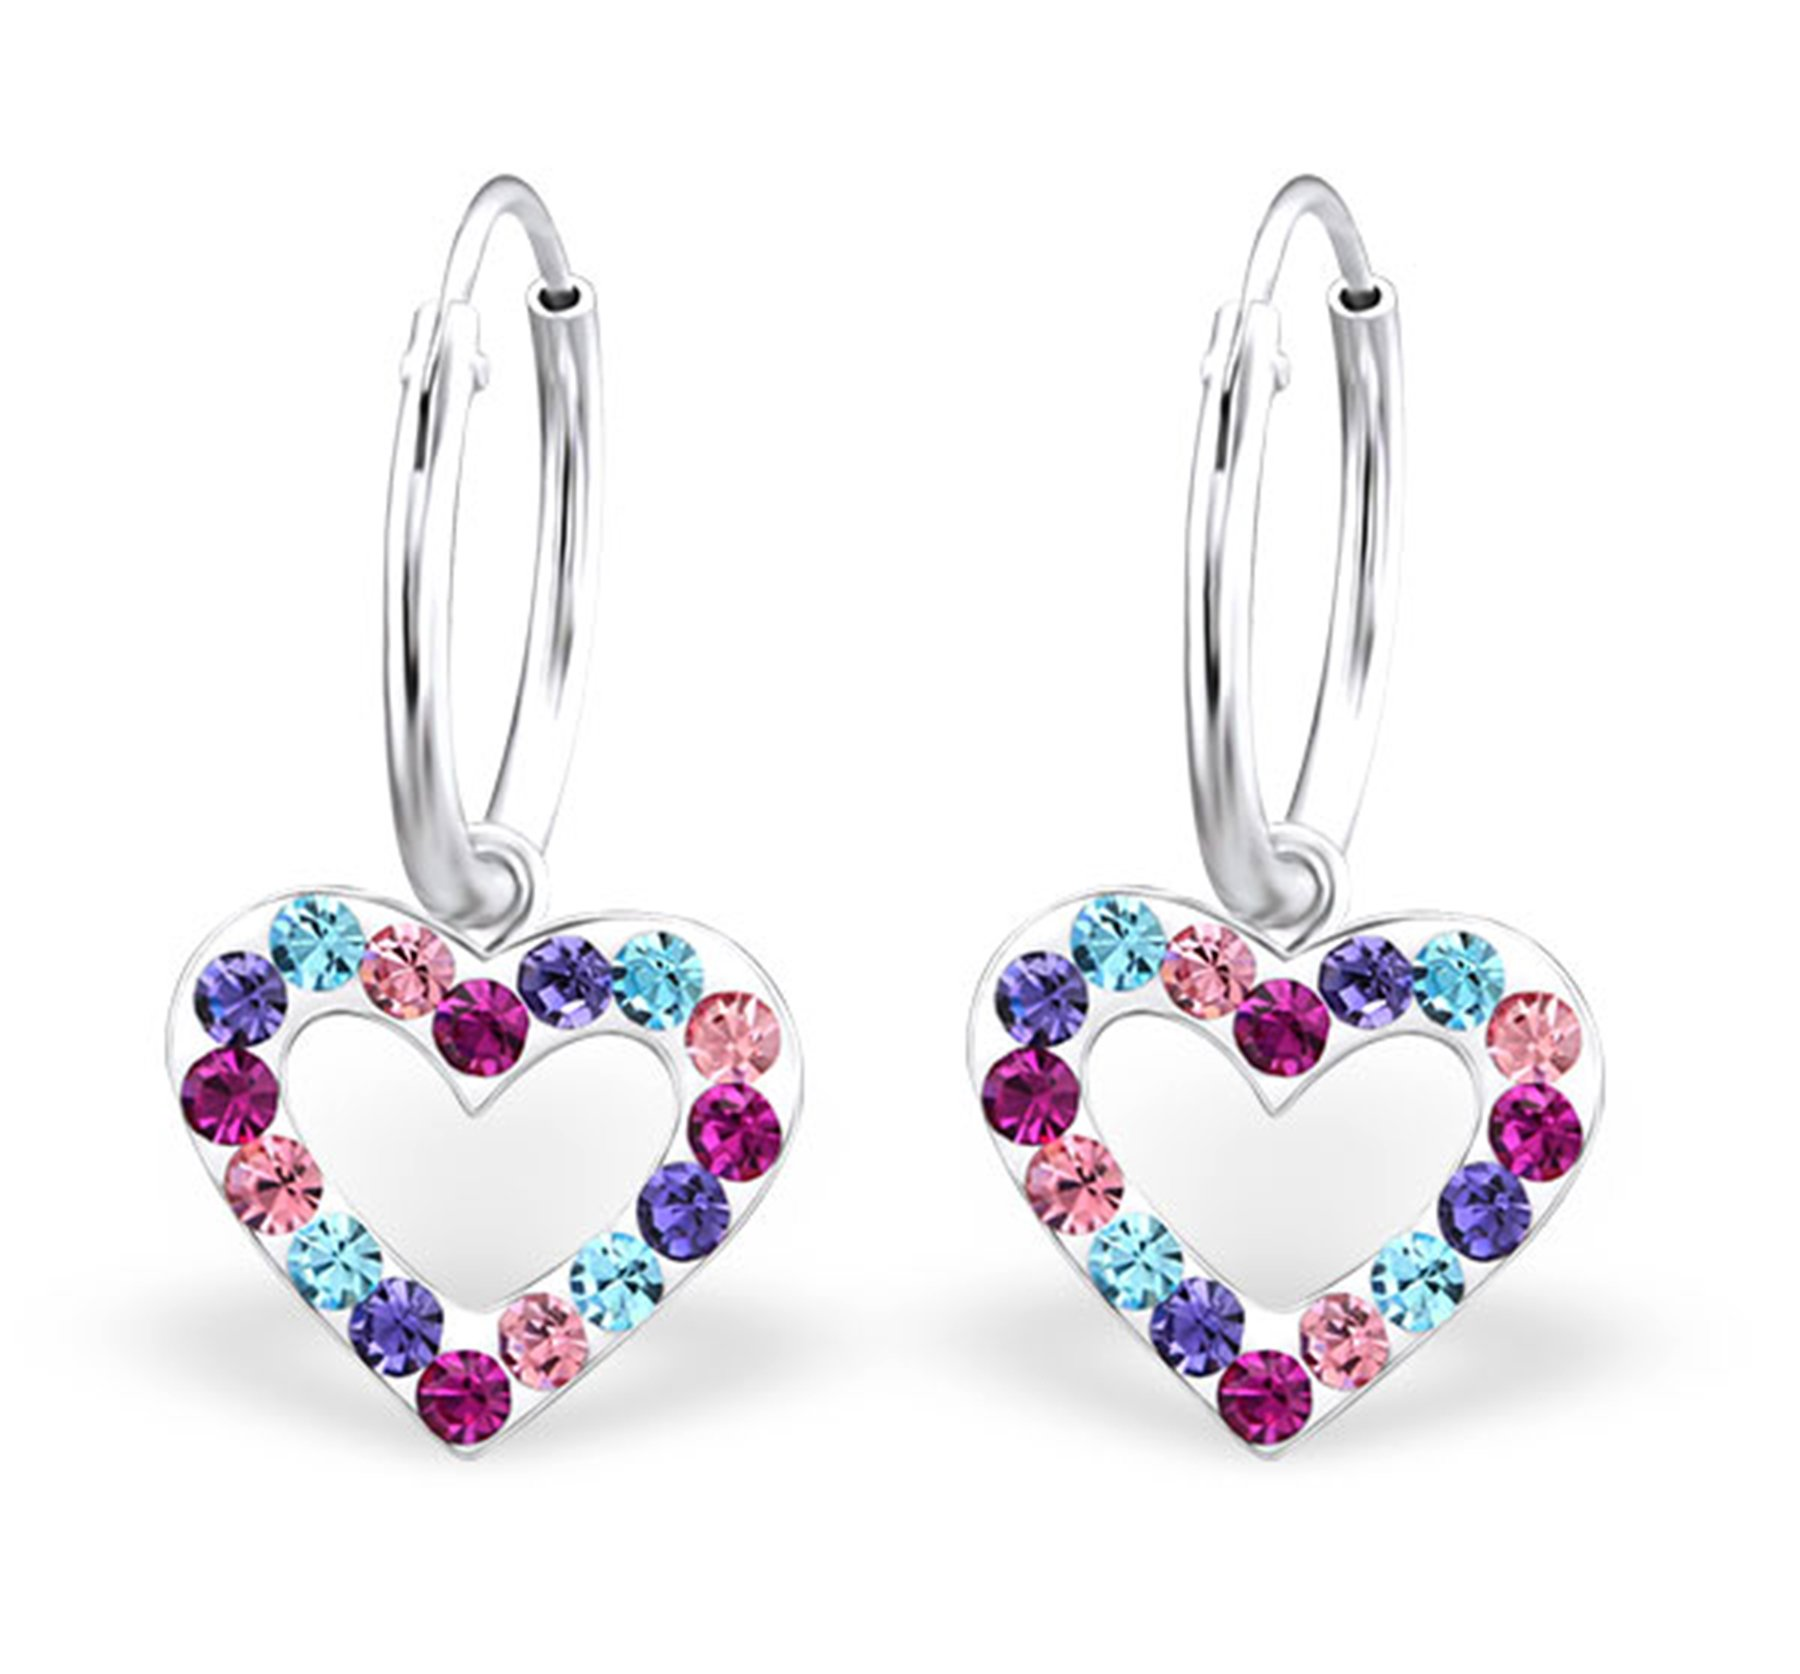 Best Wing Jewelry .925 Sterling Silver Heart/w Crystal Dangle Hoop Earrings For Woman, Teen and Girl (Blue, Purple and Pink Multi-Color)